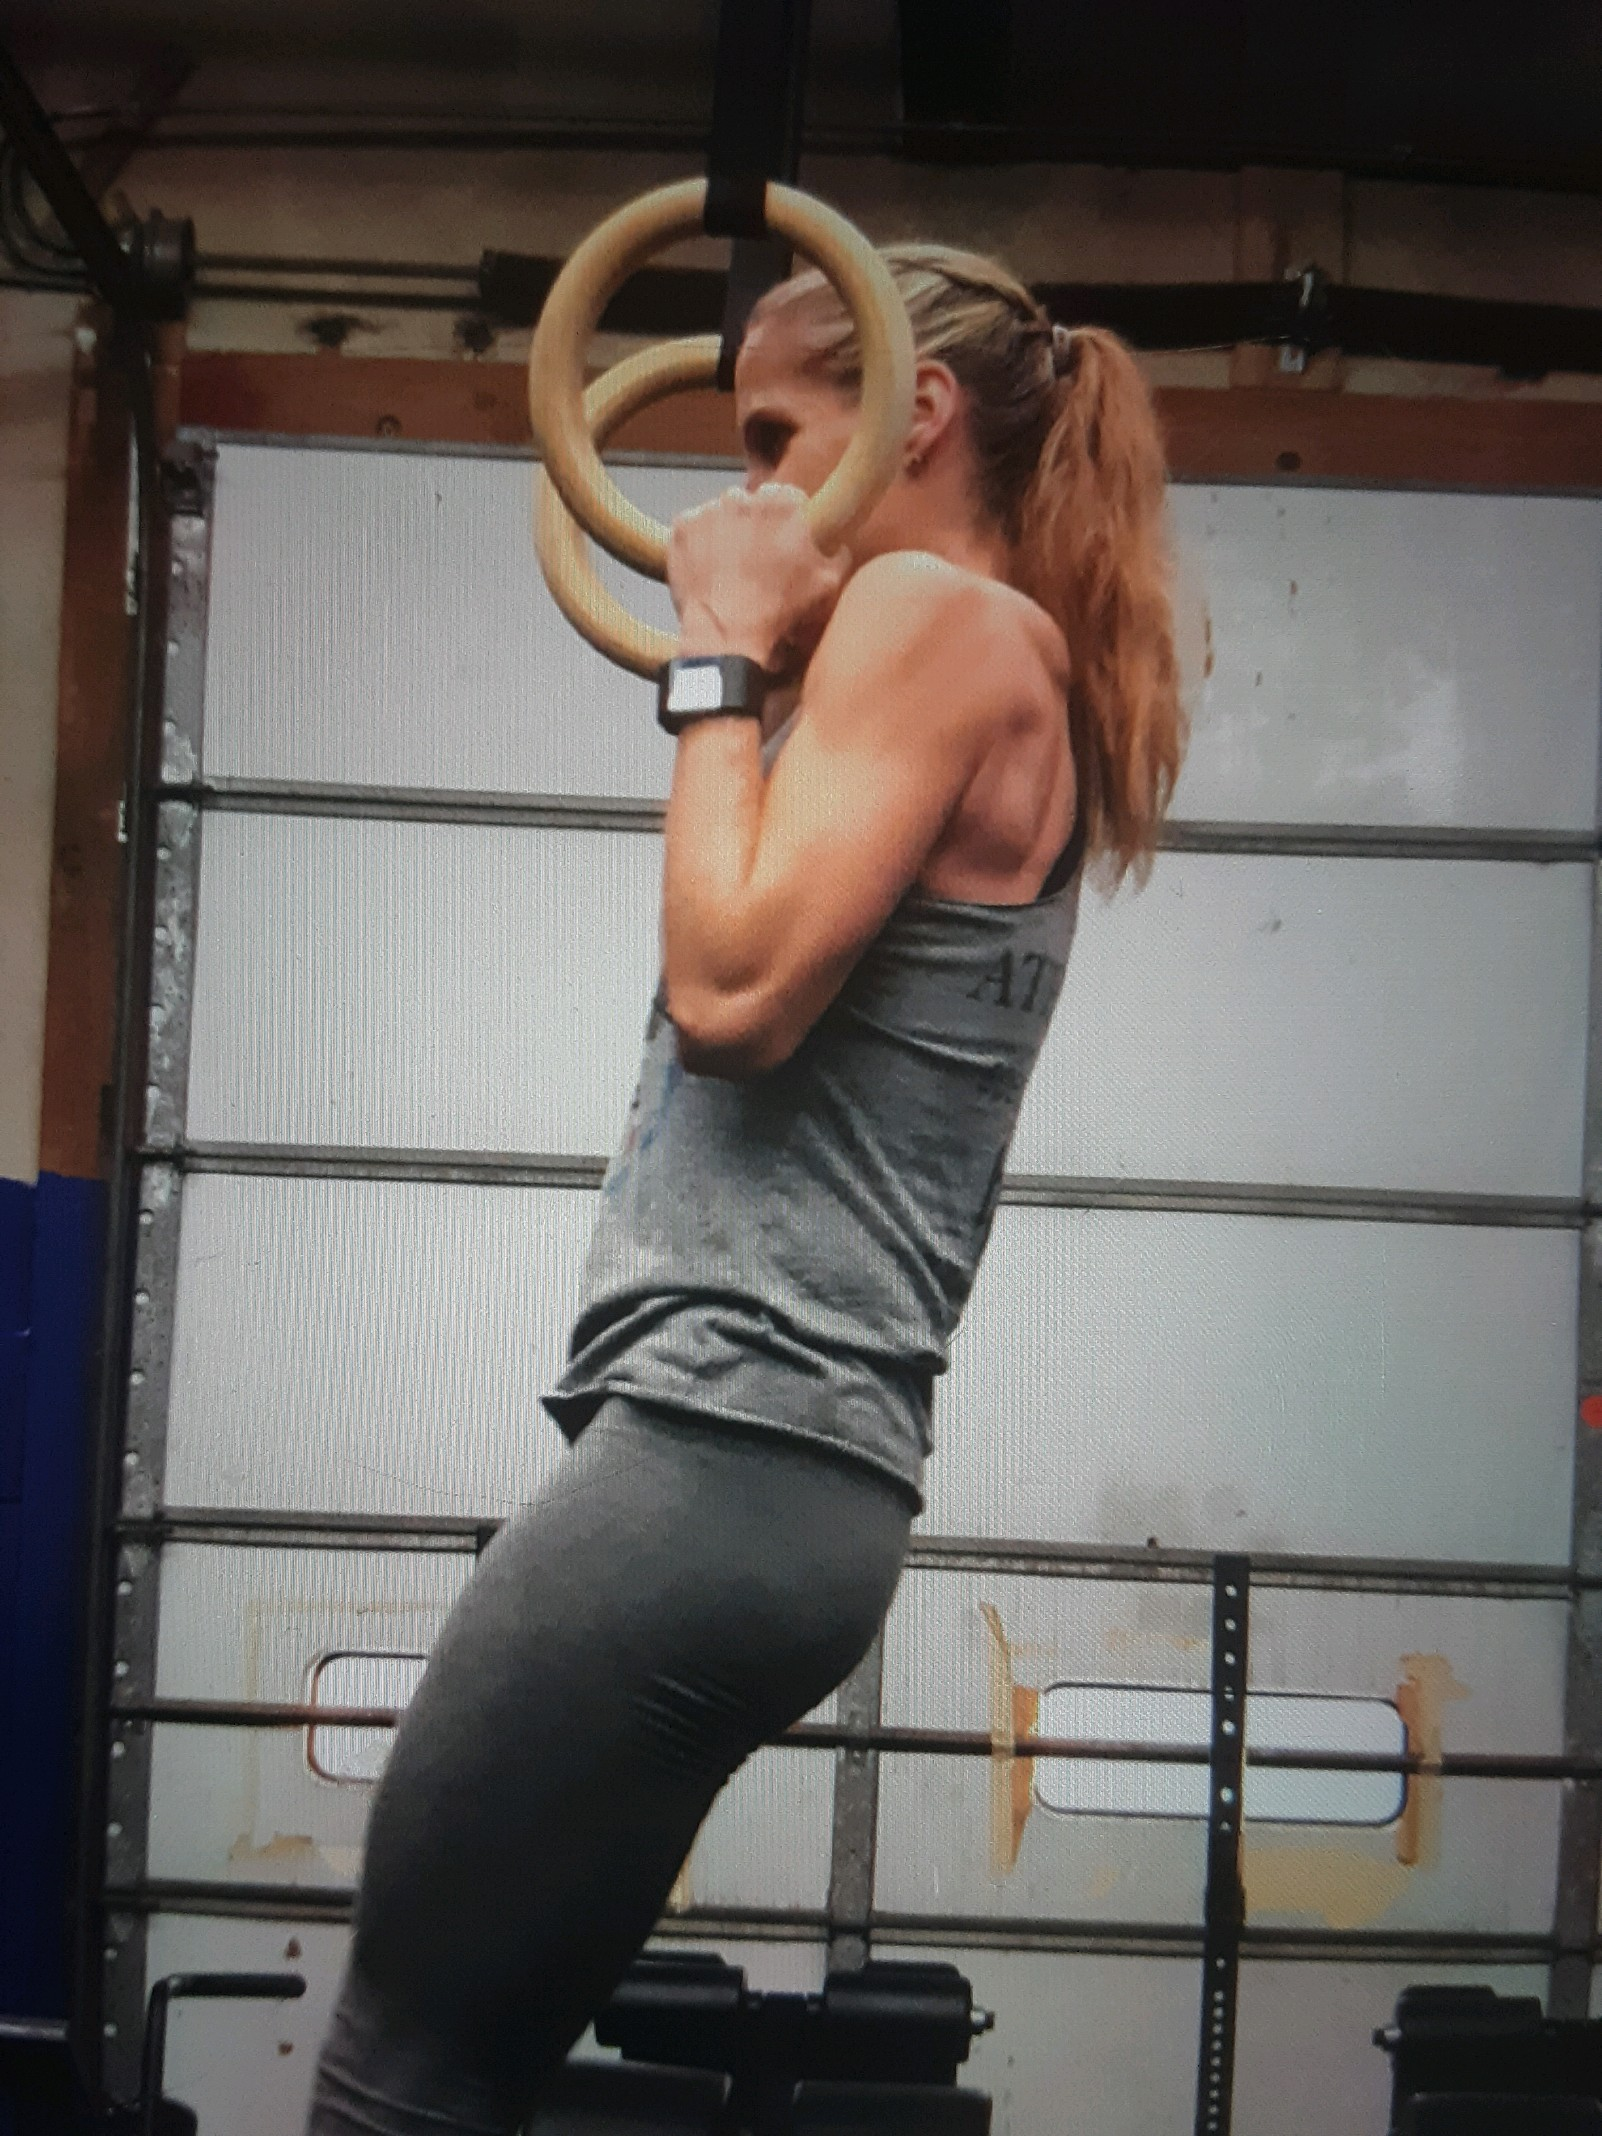 crossfit women practicing ring muscle ups in crossfit